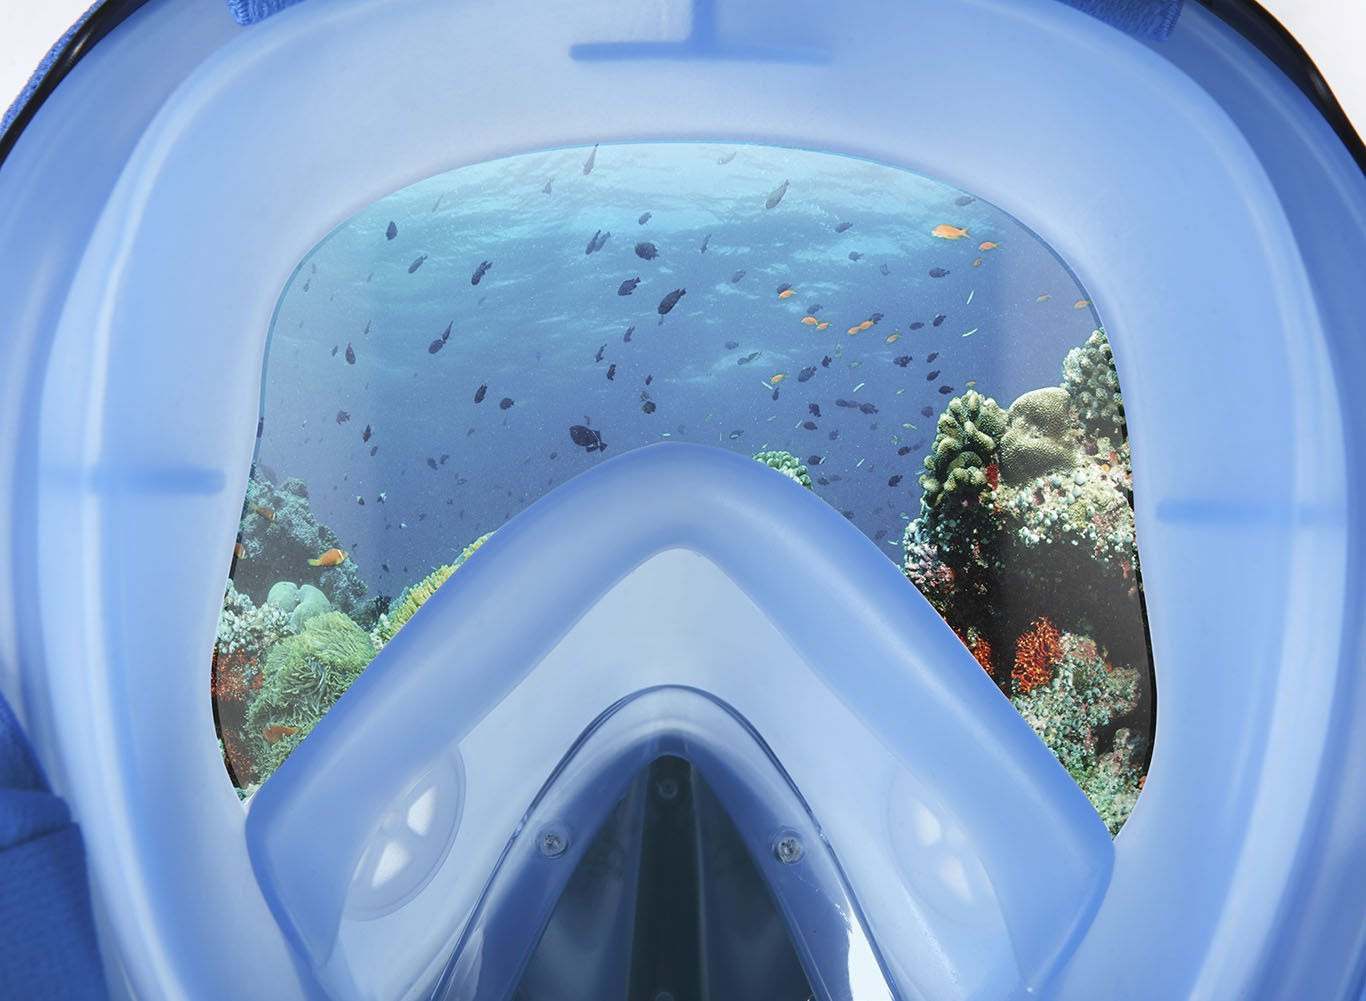 Vaincre 180° Full Face Snorkel Mask Panoramic View Anti-Fog,Anti-Leak Snorkeling Design with Adjustable Head Straps-See Larger Viewing Area Than Traditional Masks for Adults Youth (Black/Blue S/M)